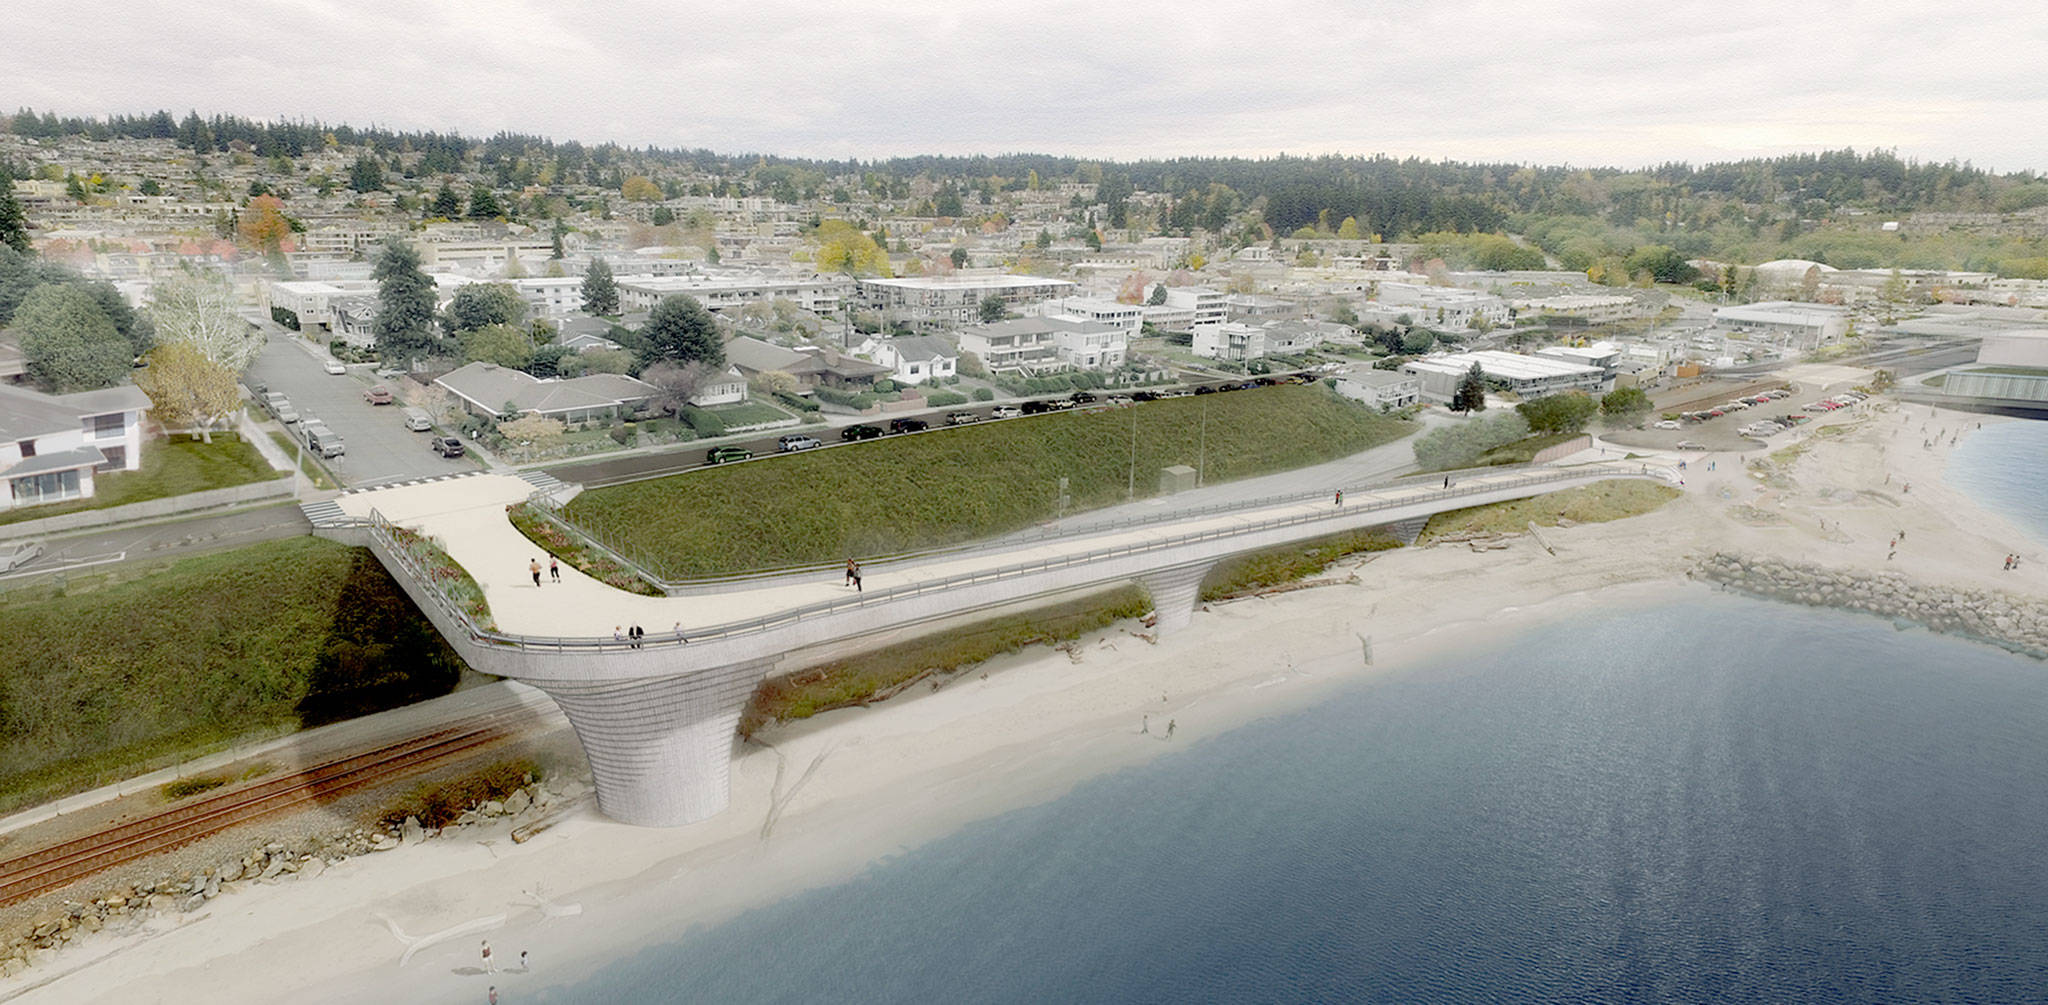 An artist's conception of the proposed Edmonds waterfront connector, for which the city council voted 4-3 to scrap plans. (City of Edmonds)